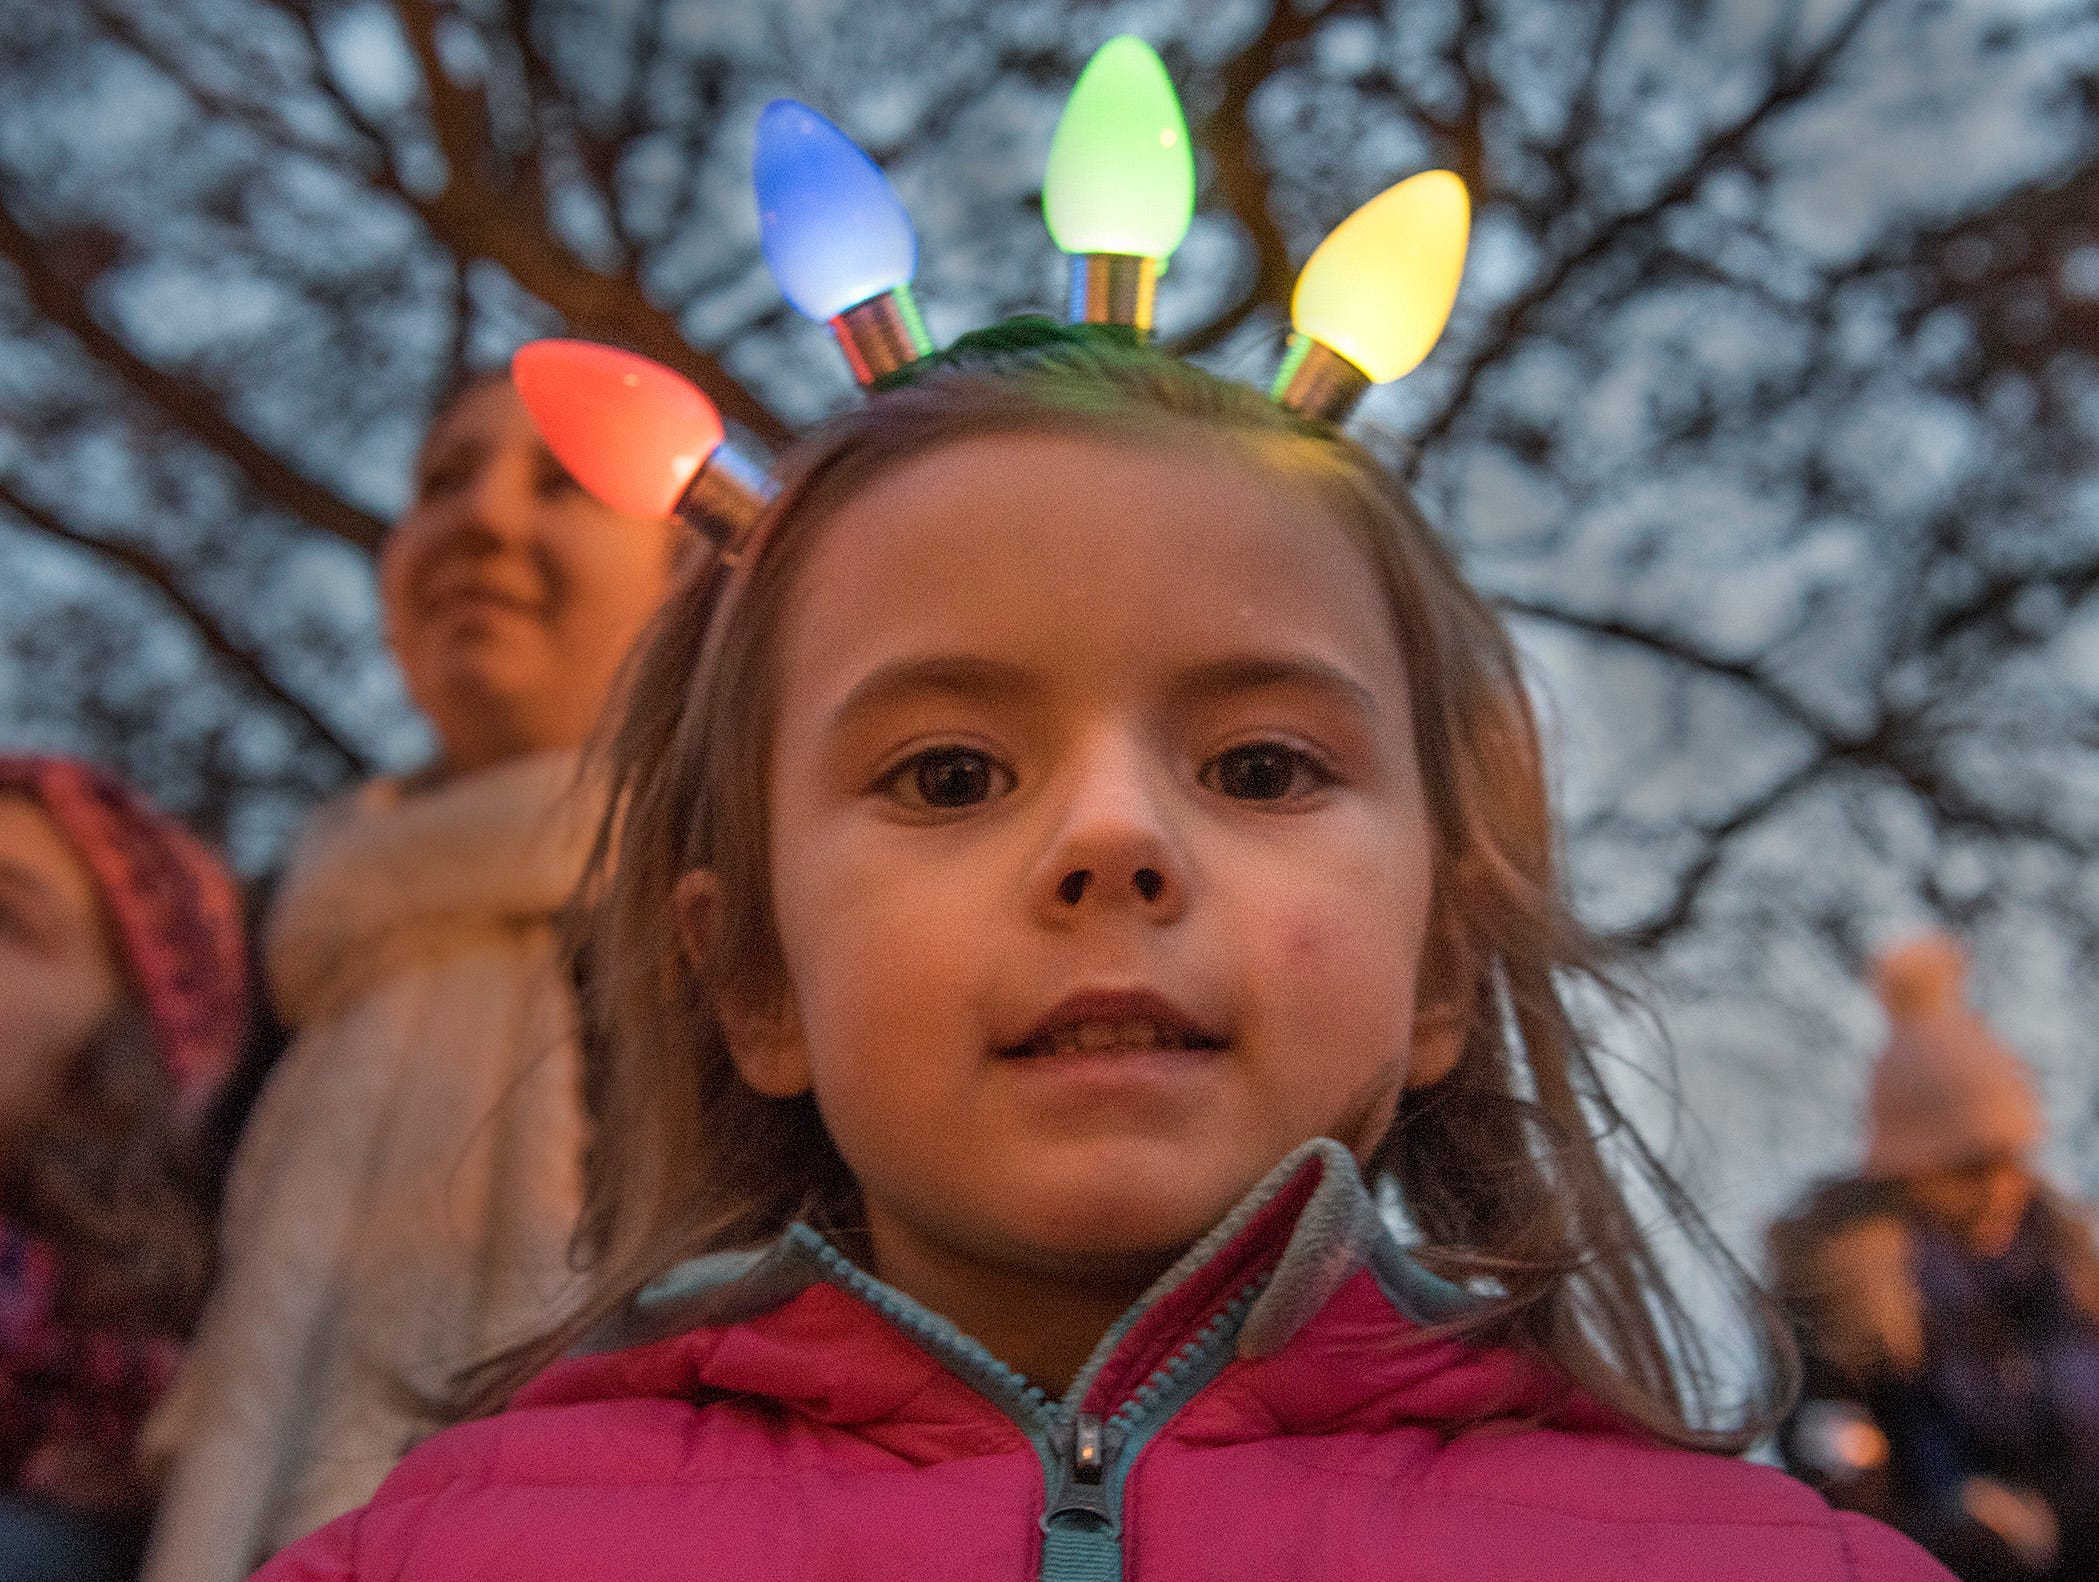 Aubrey Meier, 4 years old, of Canton, waits for Santa Claus to arrive at Kellogg Park.